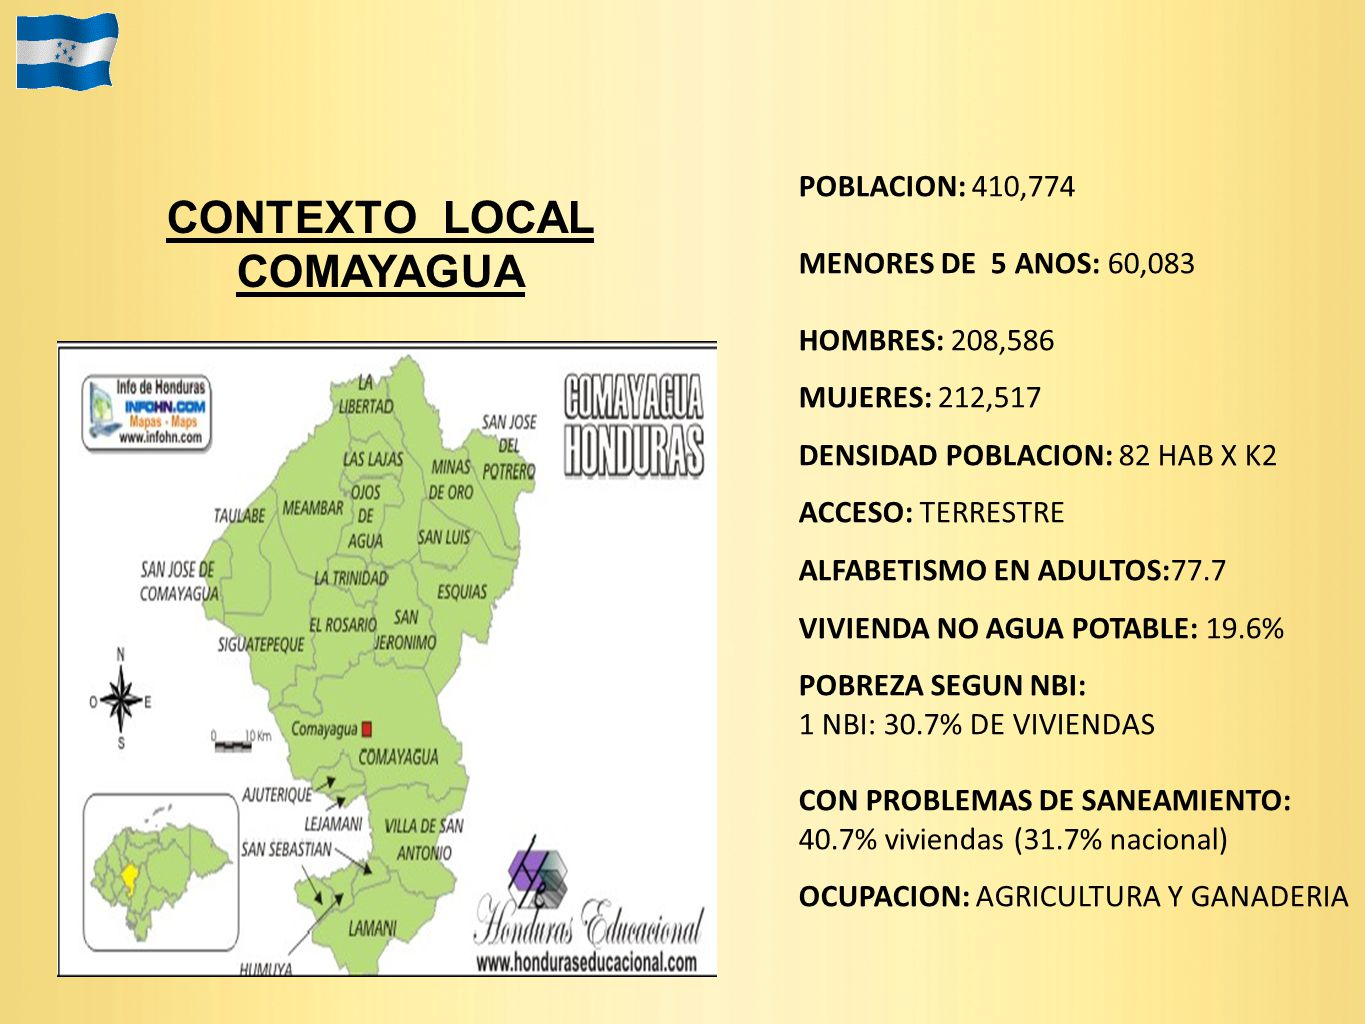 CONTEXTO LOCAL COMAYAGUA